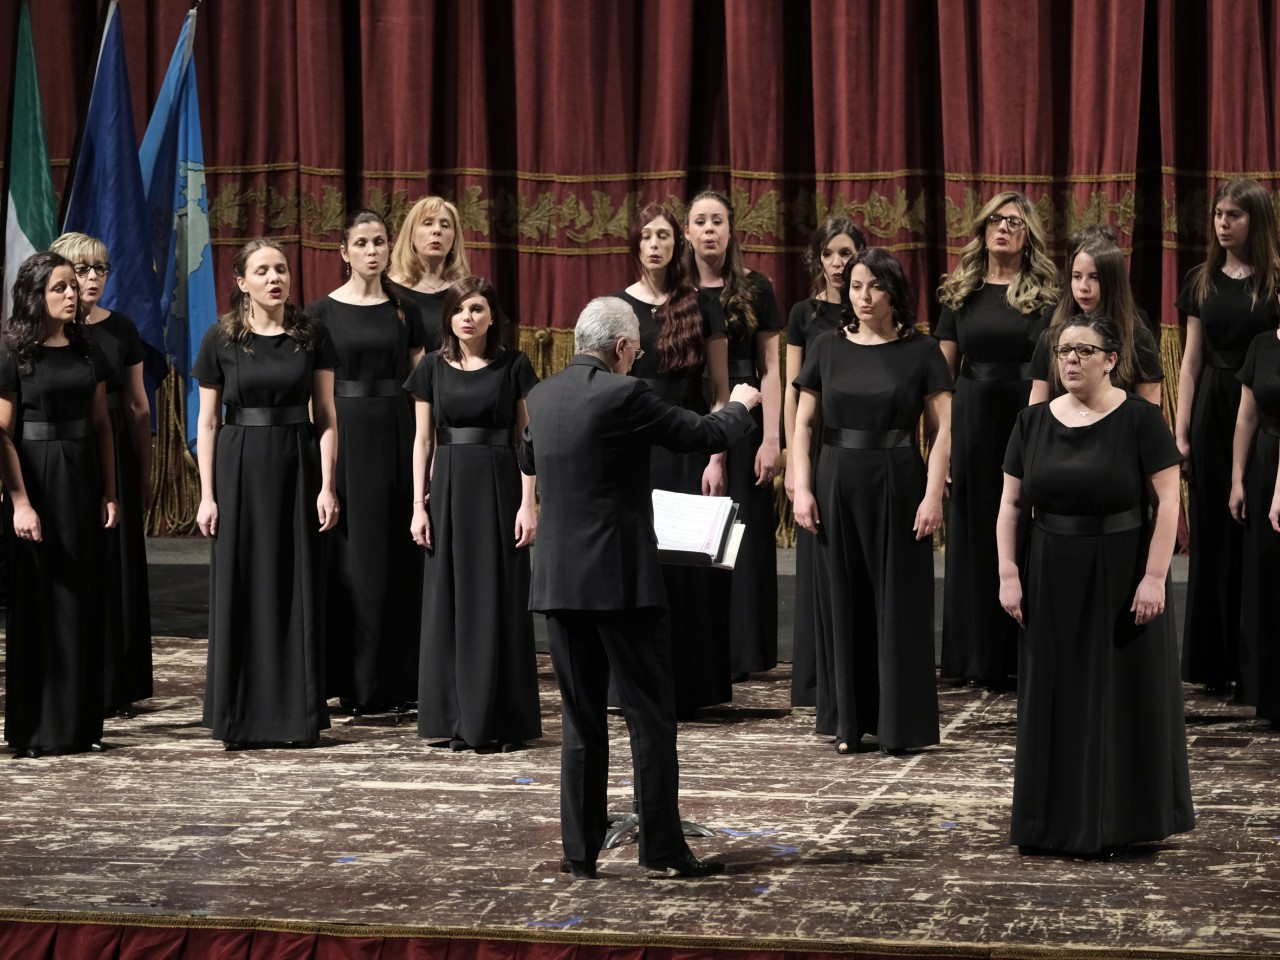 Verona Choir Competition